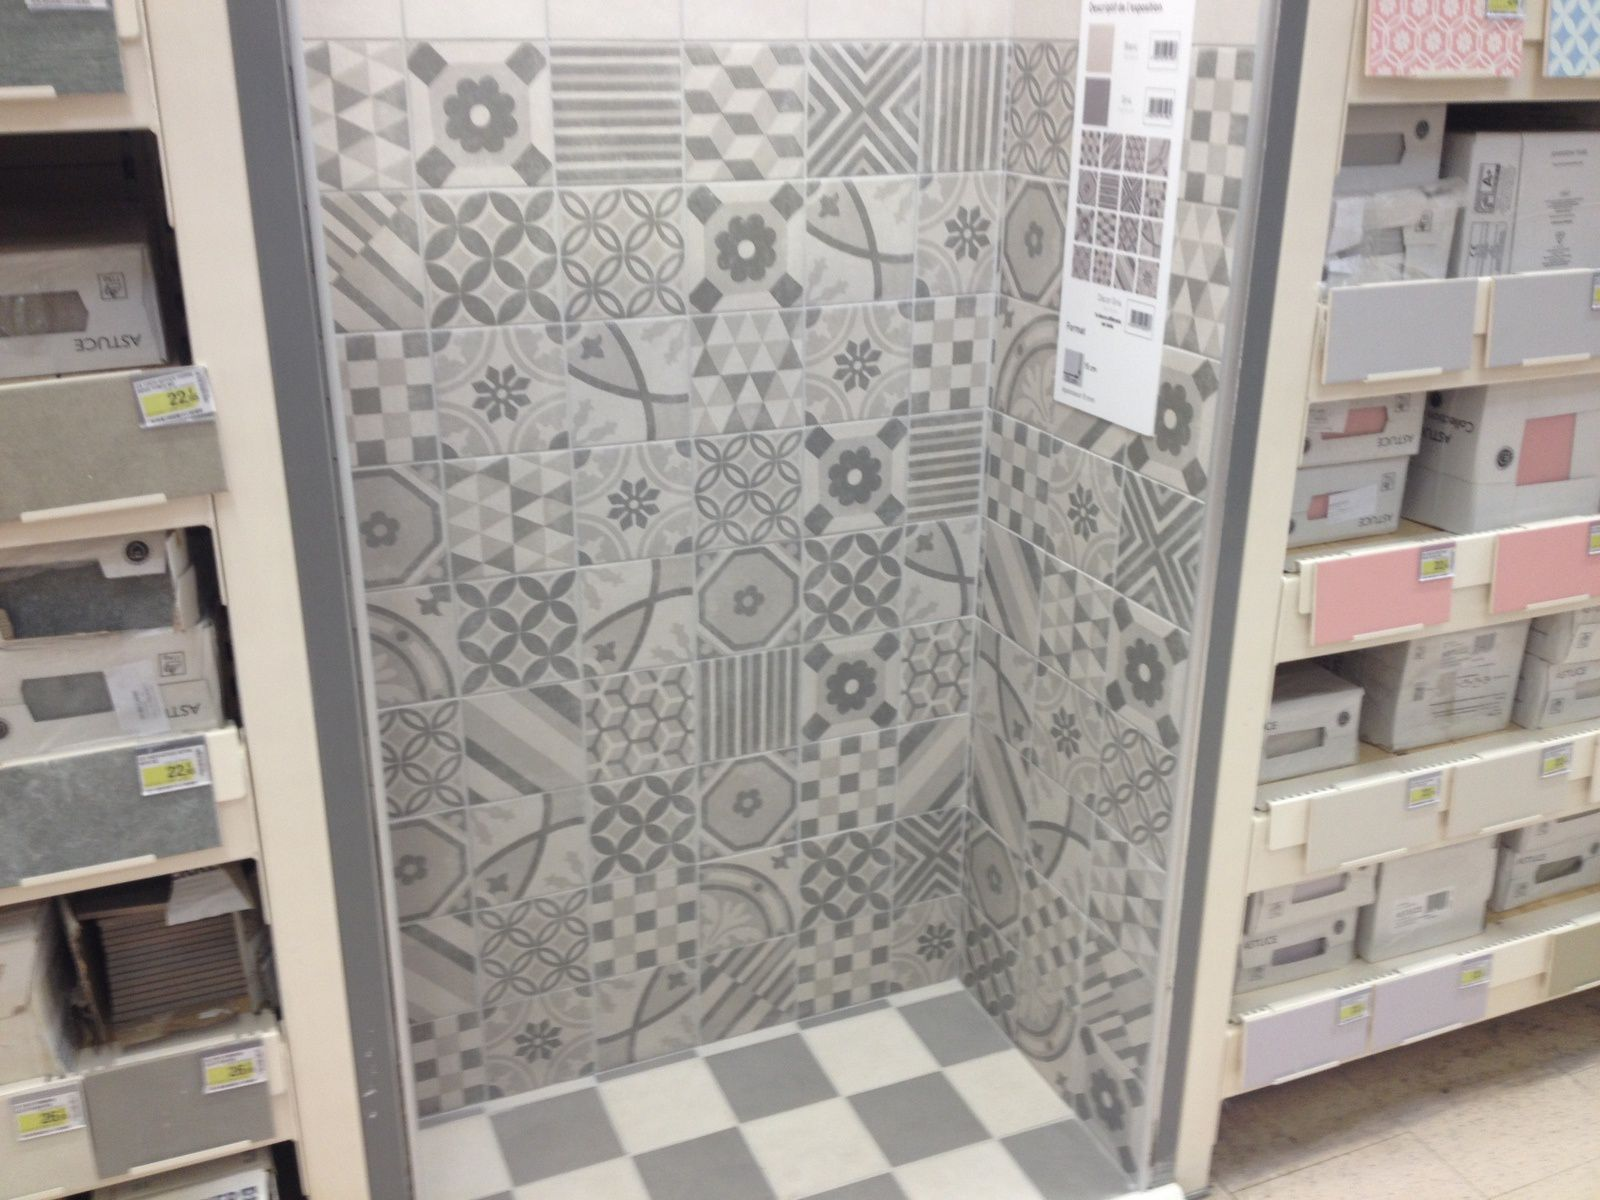 D co carrelage aspect carreaux ciment revisit s abk docks carrelages du mara - Smart tiles chez leroy merlin ...